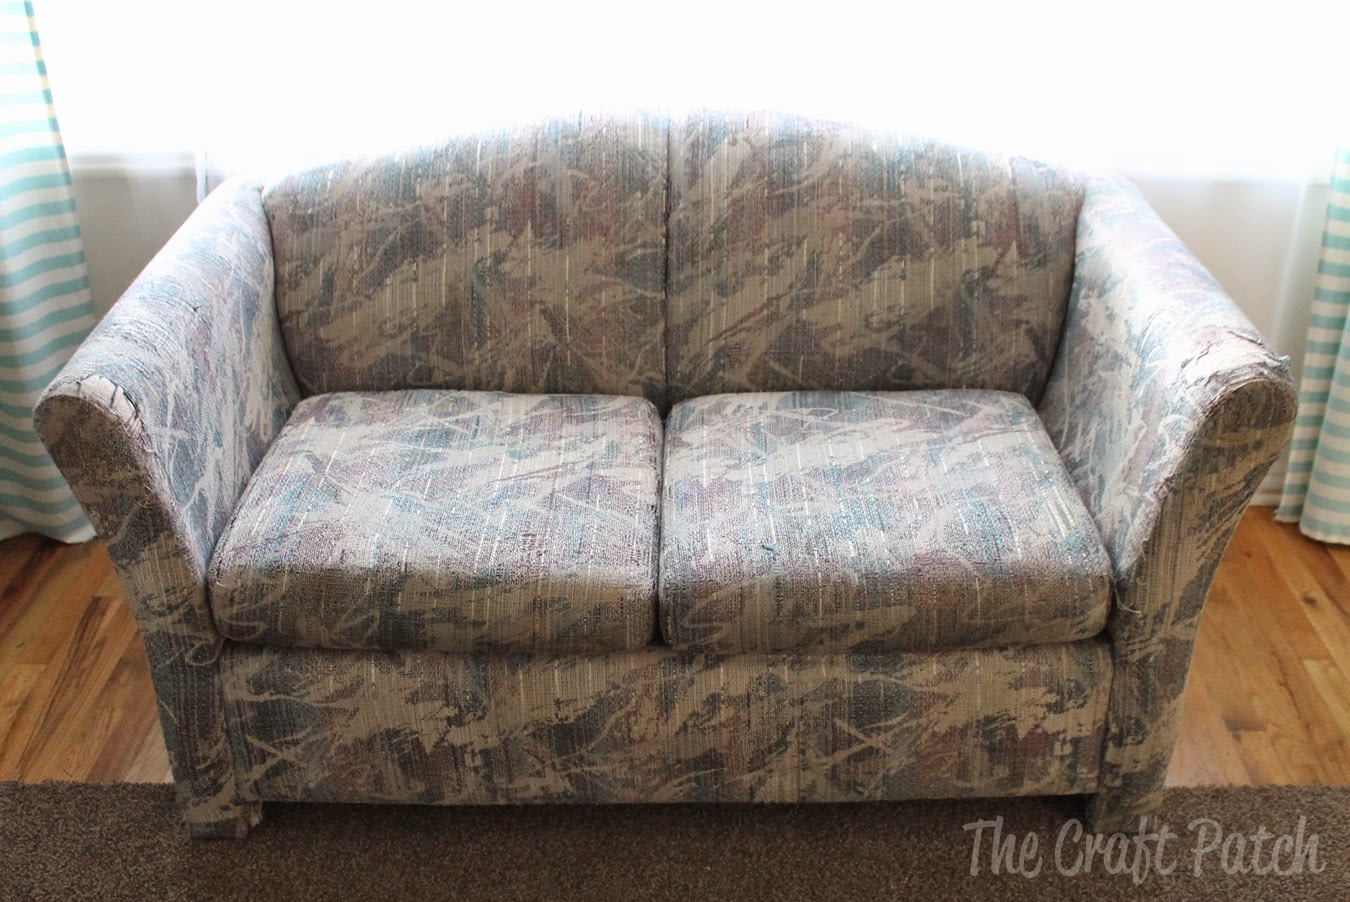 The Saving of An UGLY Couch - The Craft Patch